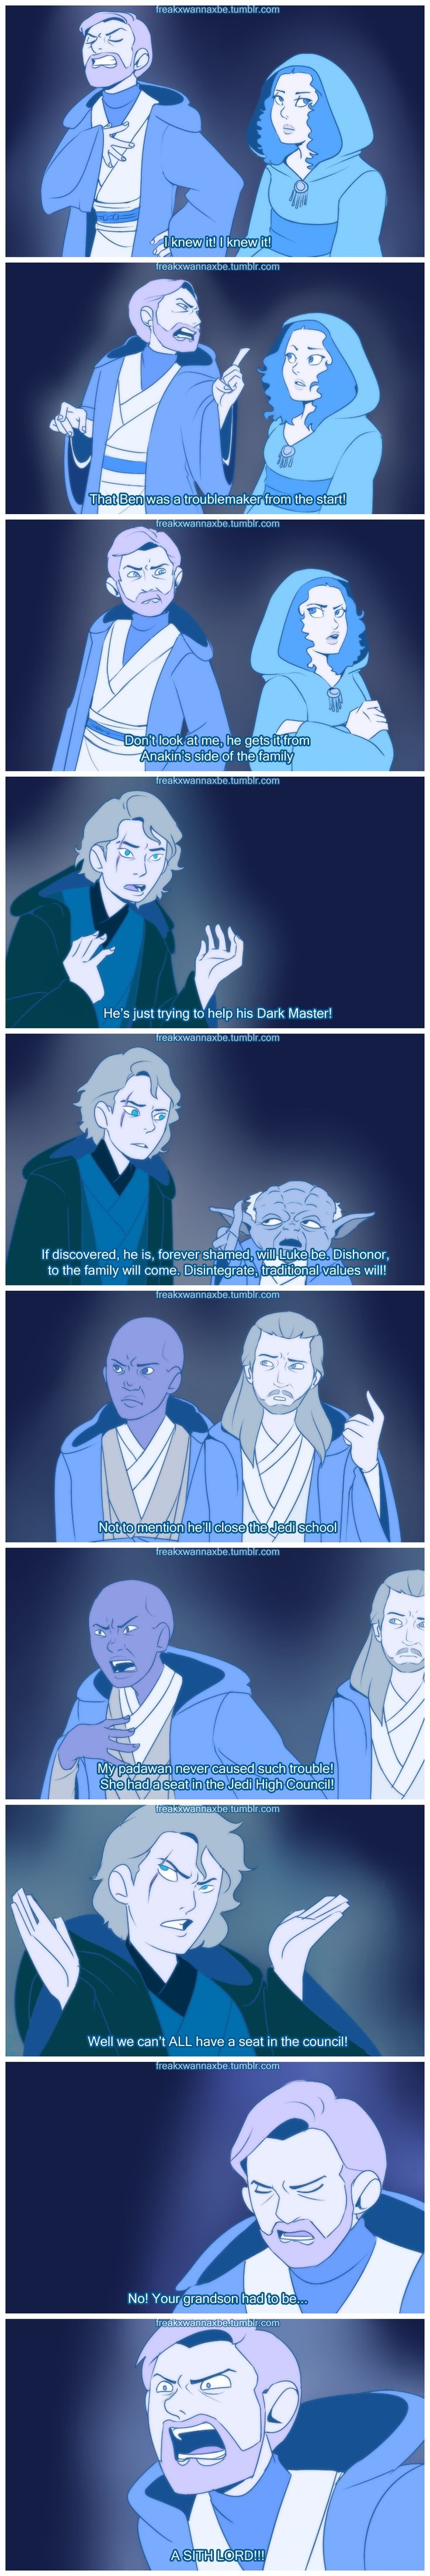 freakxwannaxbe: That scene in Mulan where all the ancestors are arguing about whose fault it was that Mulan ran off to join the army except with all the Force ghosts arguing about Ben Solo.   This is the greatest thing I have ever drawn I am so proud